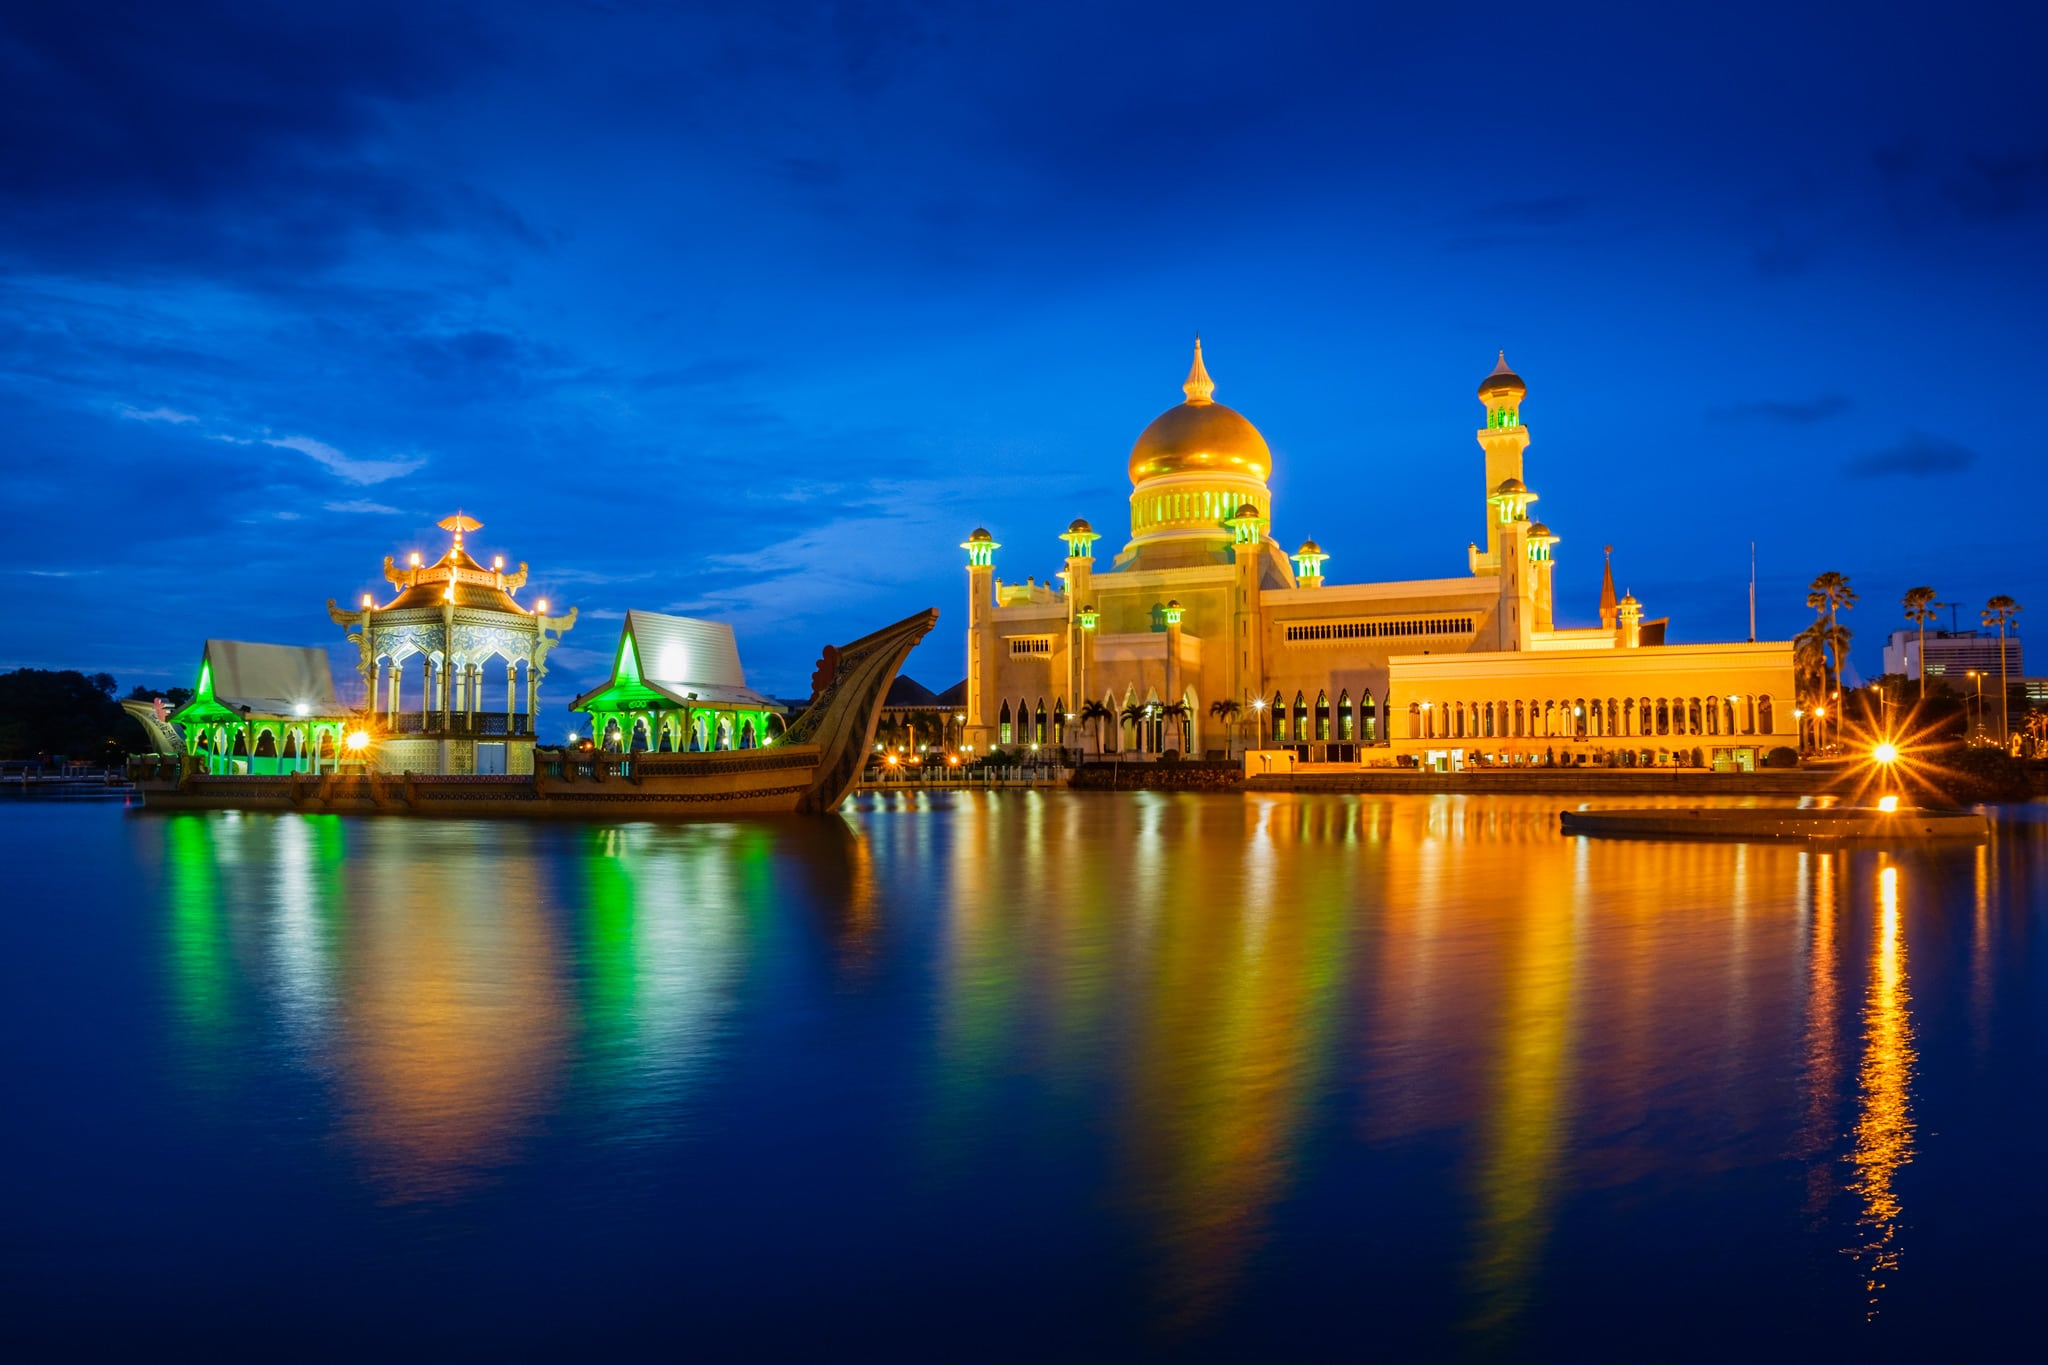 Evening image of Sultan Omar Ali Saifuddien Mosque. Bandar Seri Begawan, Brunei.